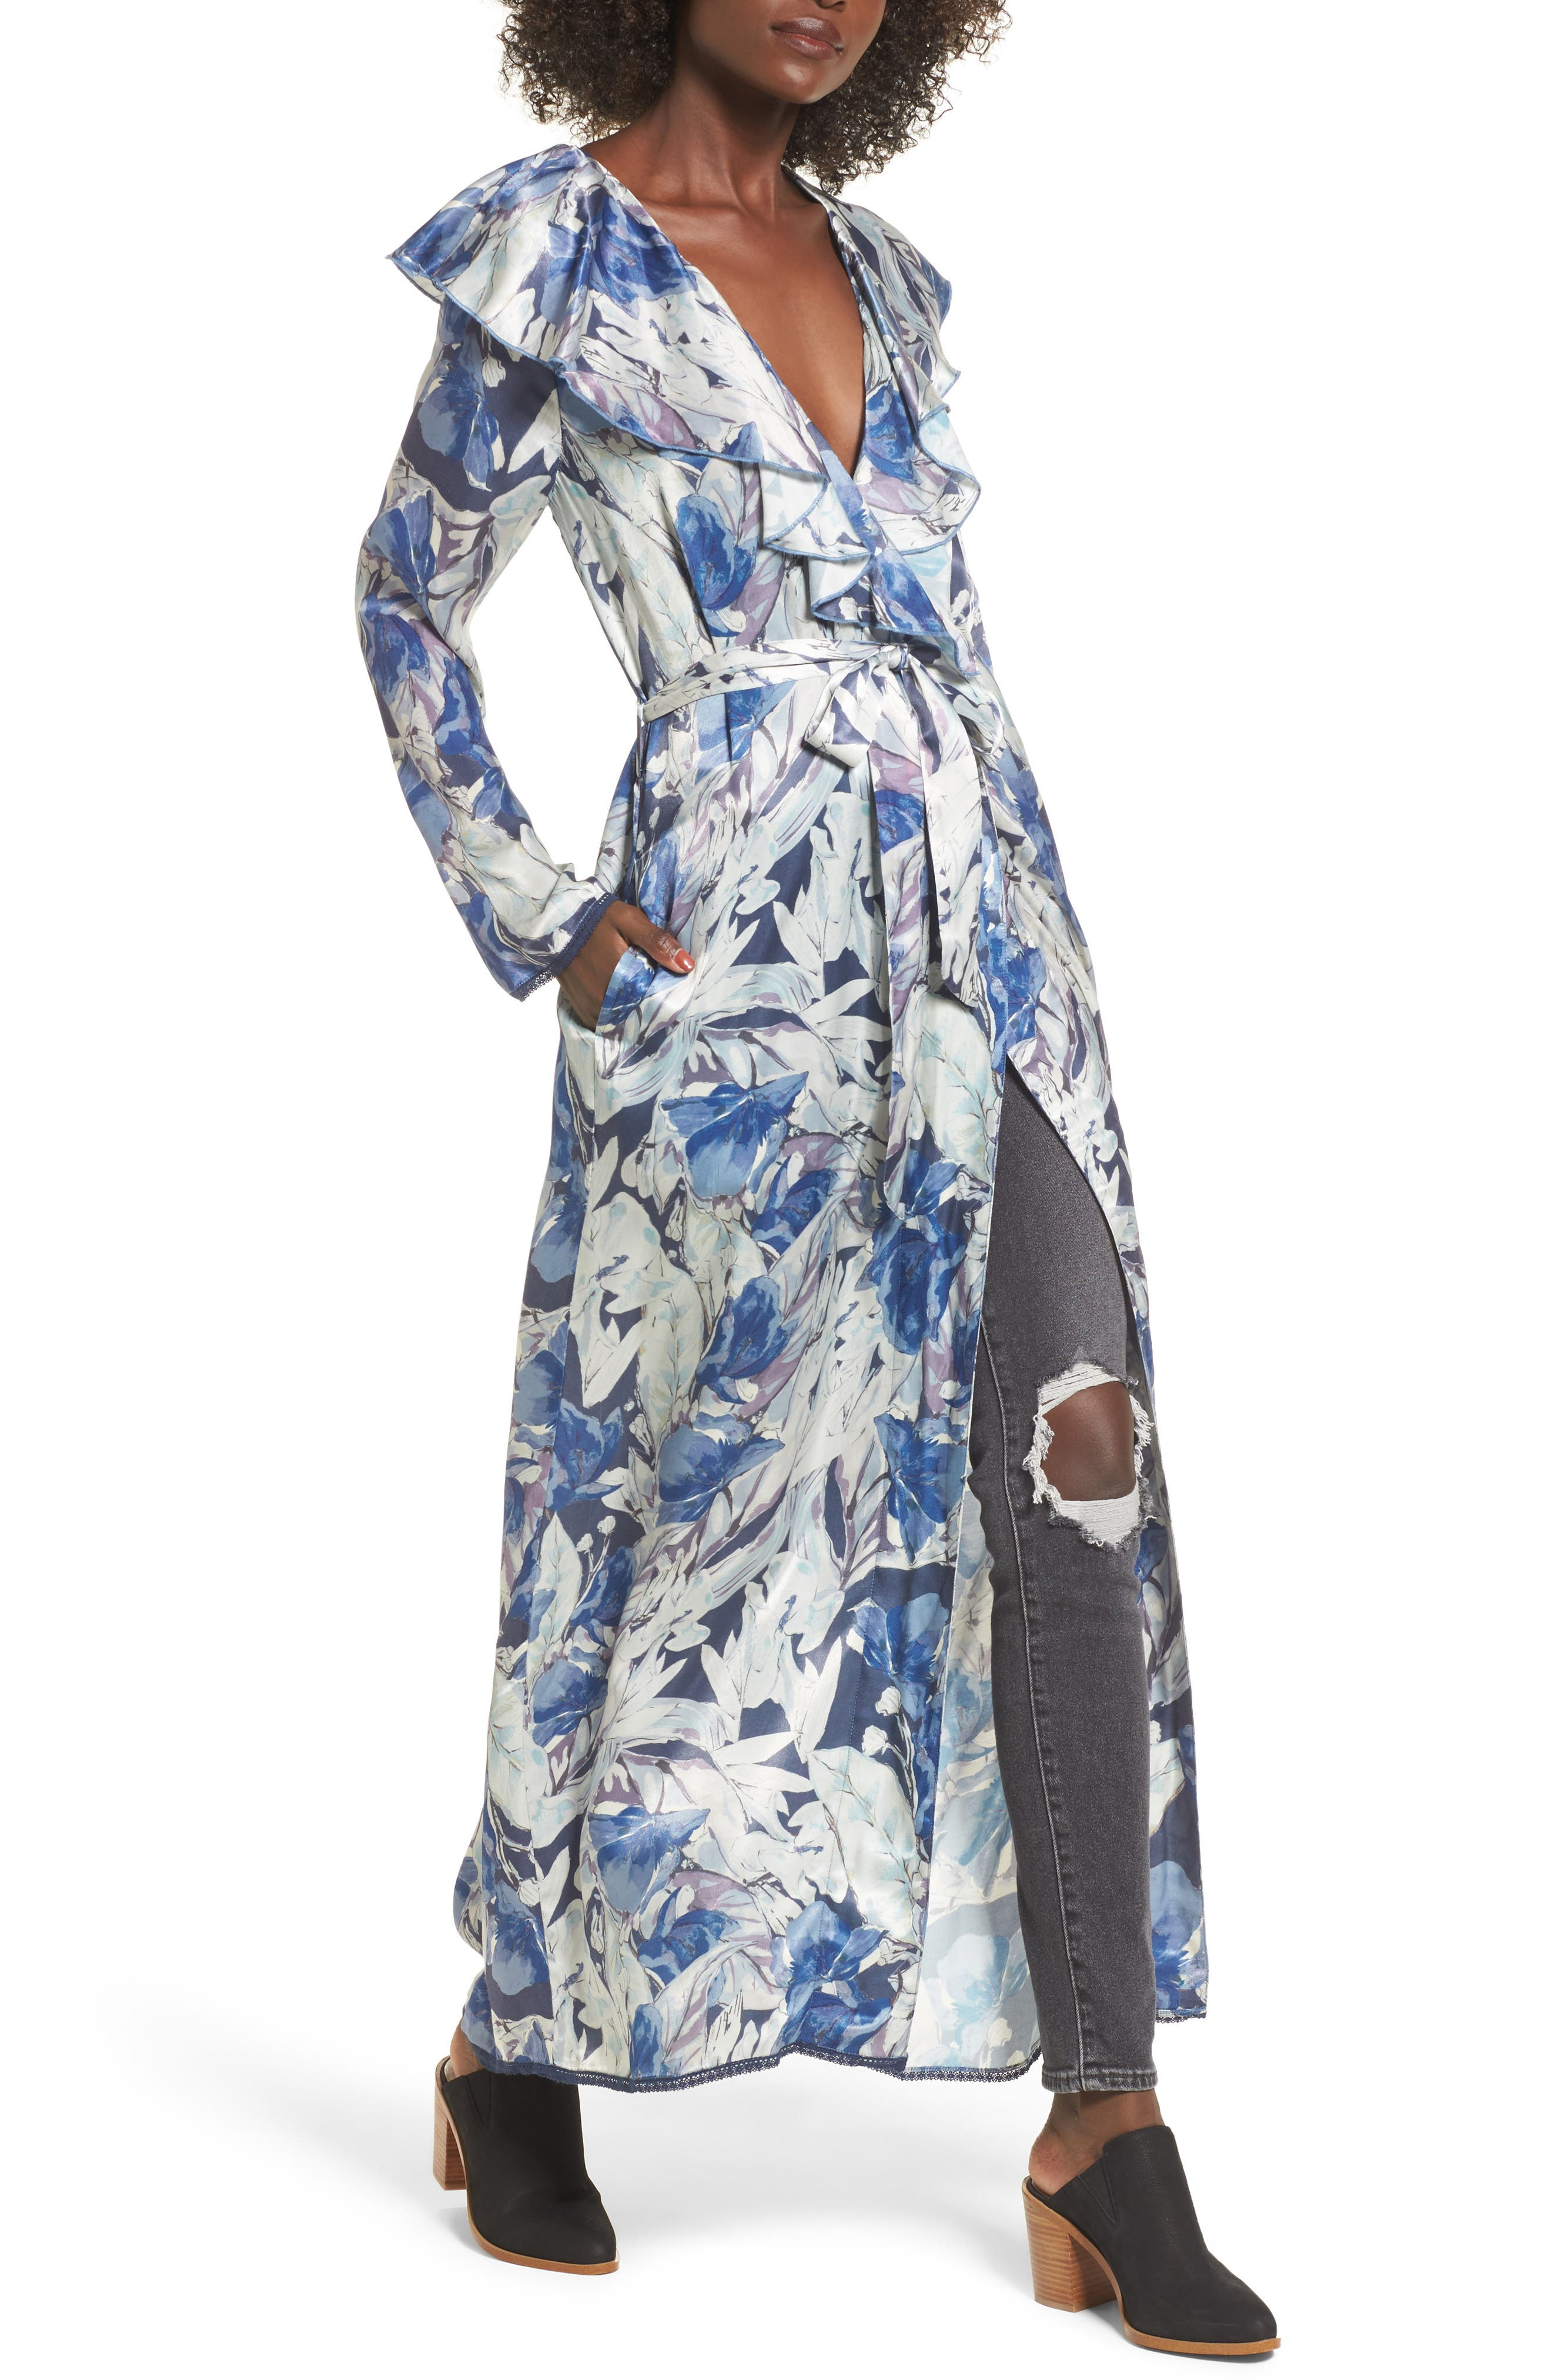 Drucilla Floral Print Duster,                         Main,                         color, Midnight Floral